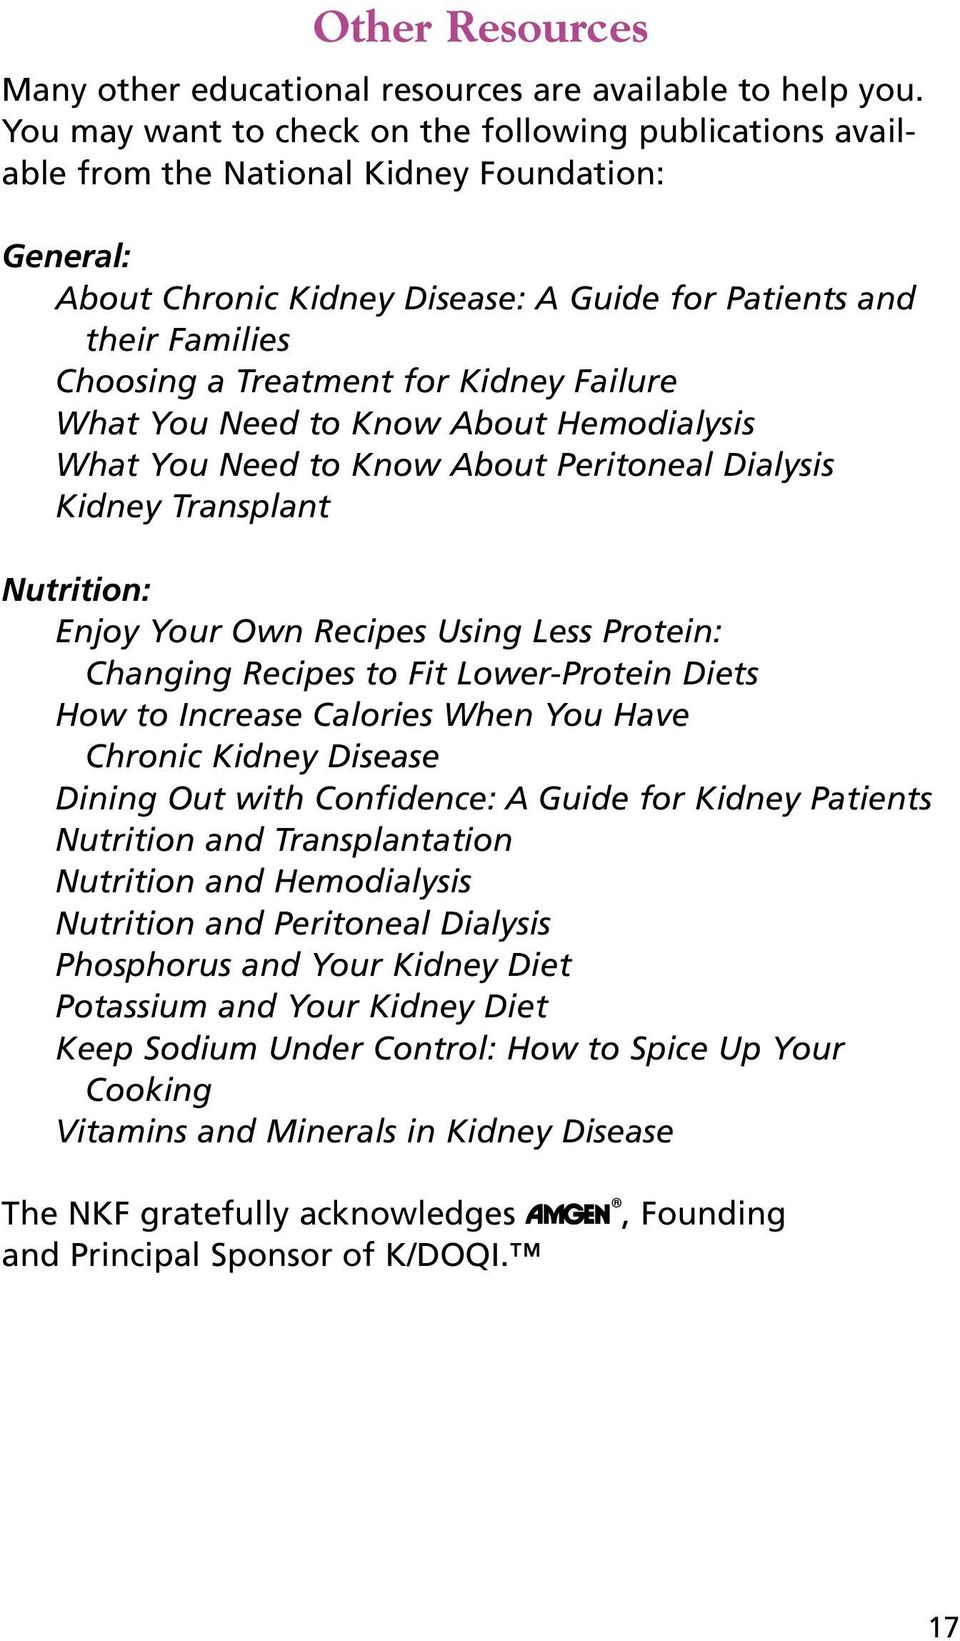 for Kidney Failure What You Need to Know About Hemodialysis What You Need to Know About Peritoneal Dialysis Kidney Transplant Nutrition: Enjoy Your Own Recipes Using Less Protein: Changing Recipes to